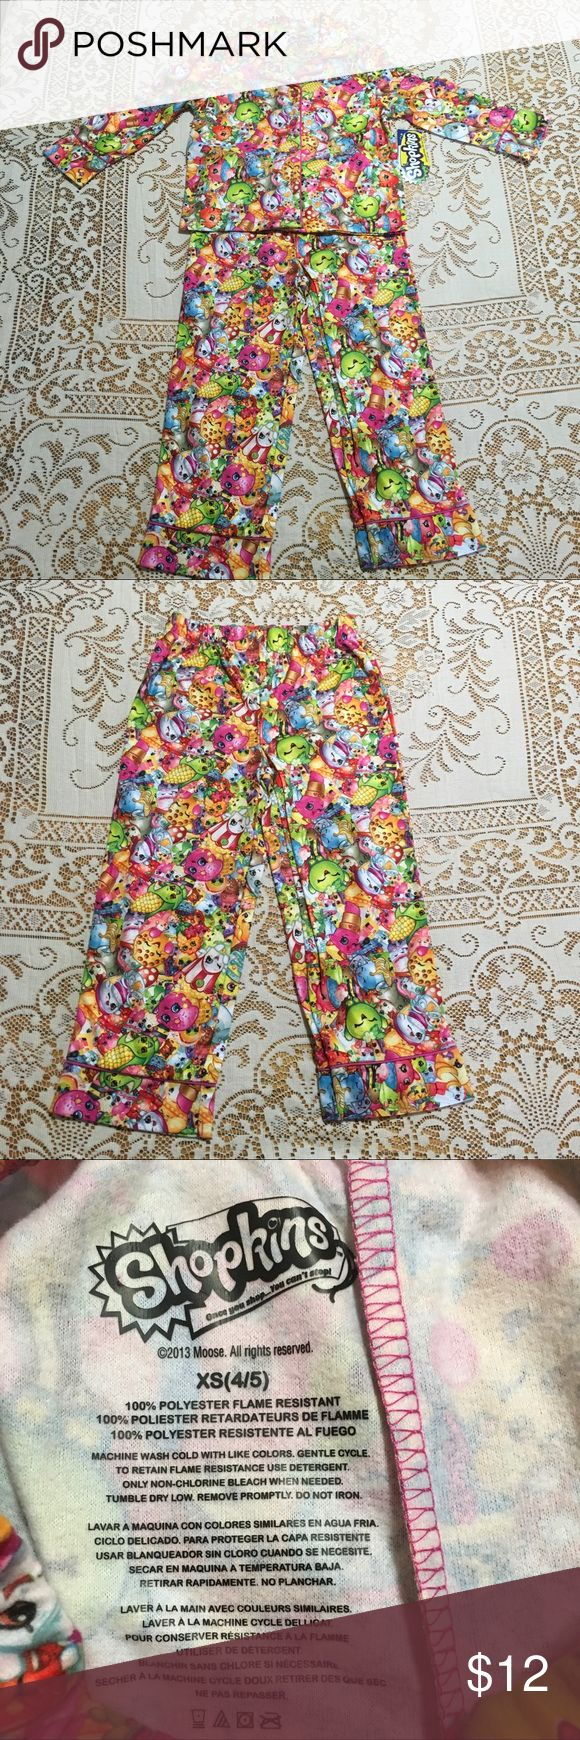 """NEW Shopkins Gang Girls Pajama Set NEW Shopkins Gang Girls  2 Piece Pajama Set  Long Sleeve Shirt  Pant Bottoms  Size  XS 4/5  Measures:  Shirt 13"""" from arm pit to arm pit,  Length 15 1/2"""" Pants 9"""" waist from right to left front (elastic waist), 22 1/2"""" length outer seam & 15 1/2"""" inseam  """"See our store for other Shopkin items""""  Smoke & Pet Free Home  IT#3000 Shopkins Pajamas Pajama Sets"""